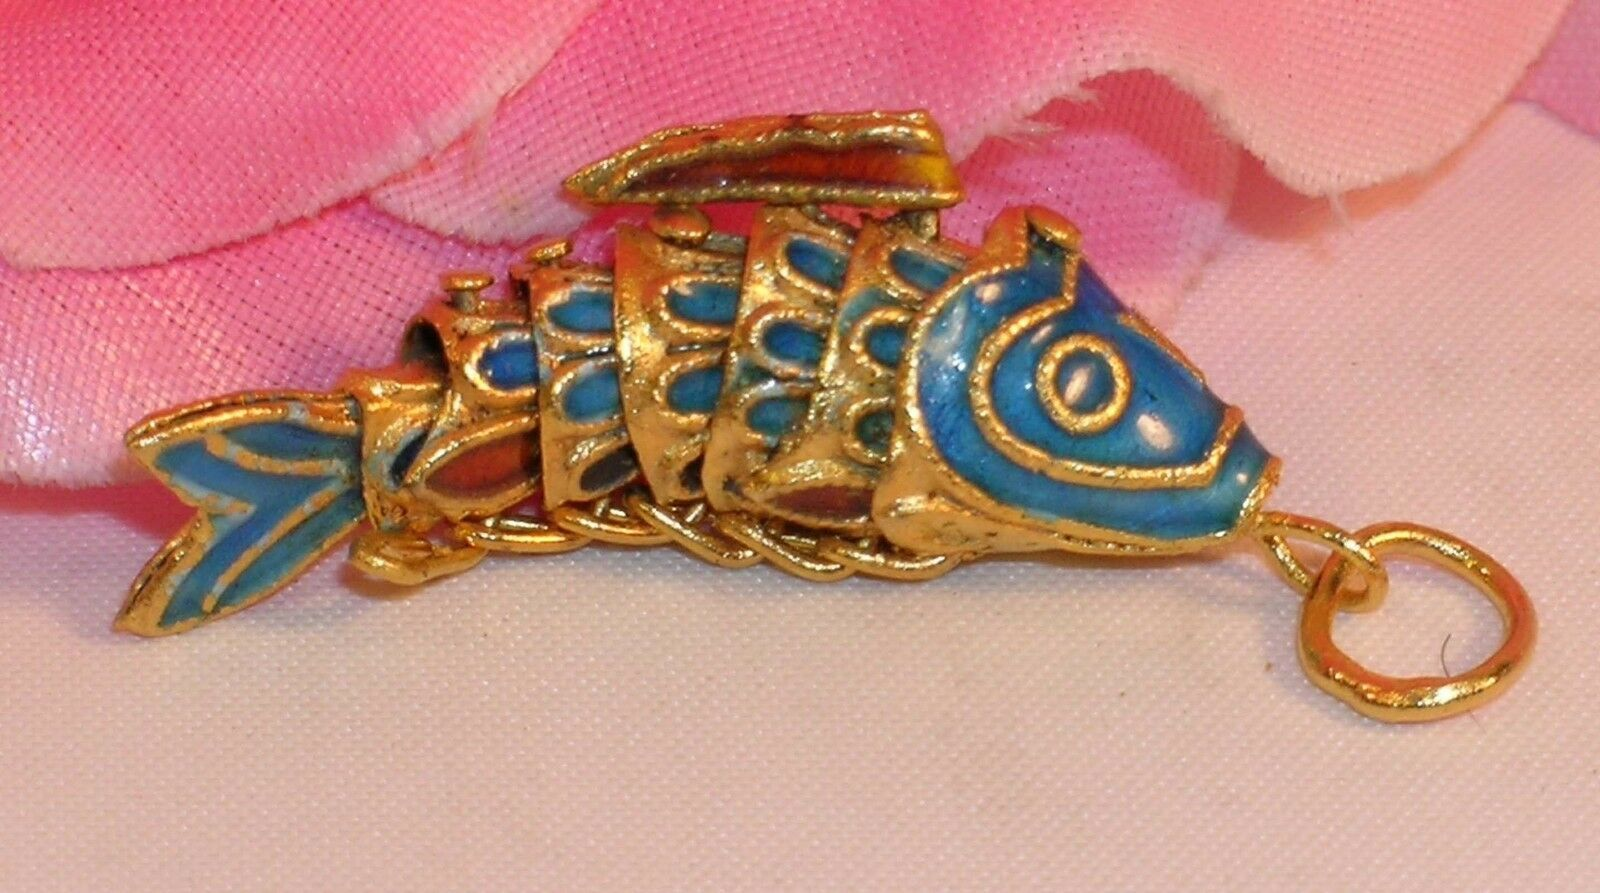 Primary image for Vintage Cloisonne Enamel Articulated Fish Pendant Blue and Gold Tone Koi lot #6